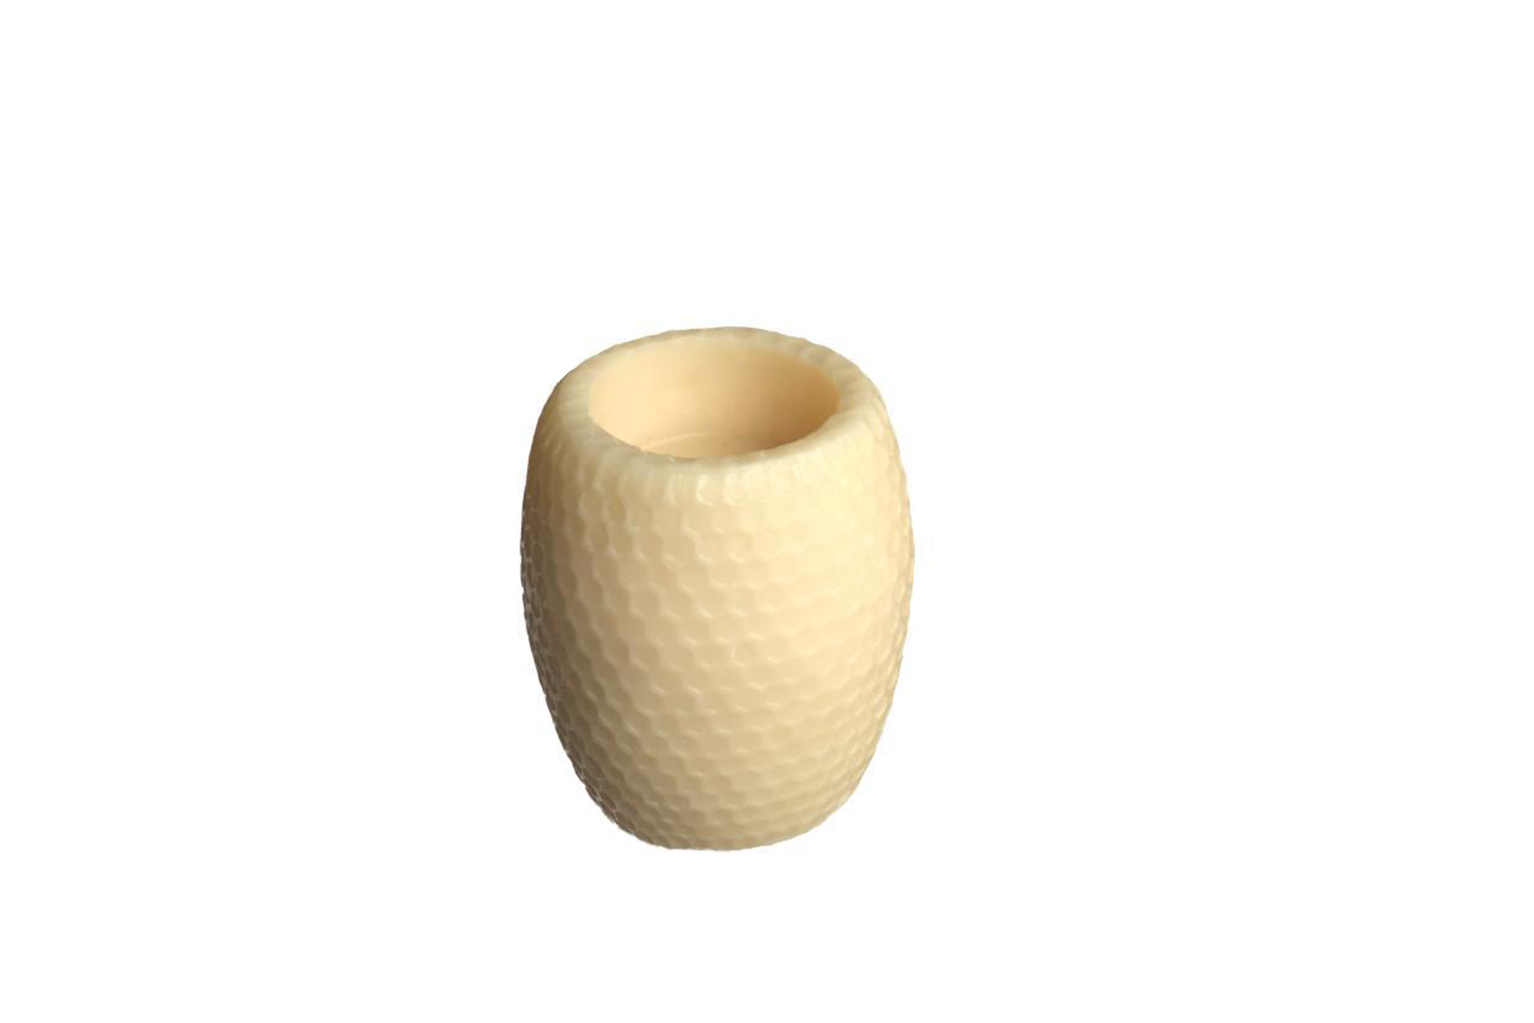 Honeycomb Hurricane Beeswax Candle - Small - S$35